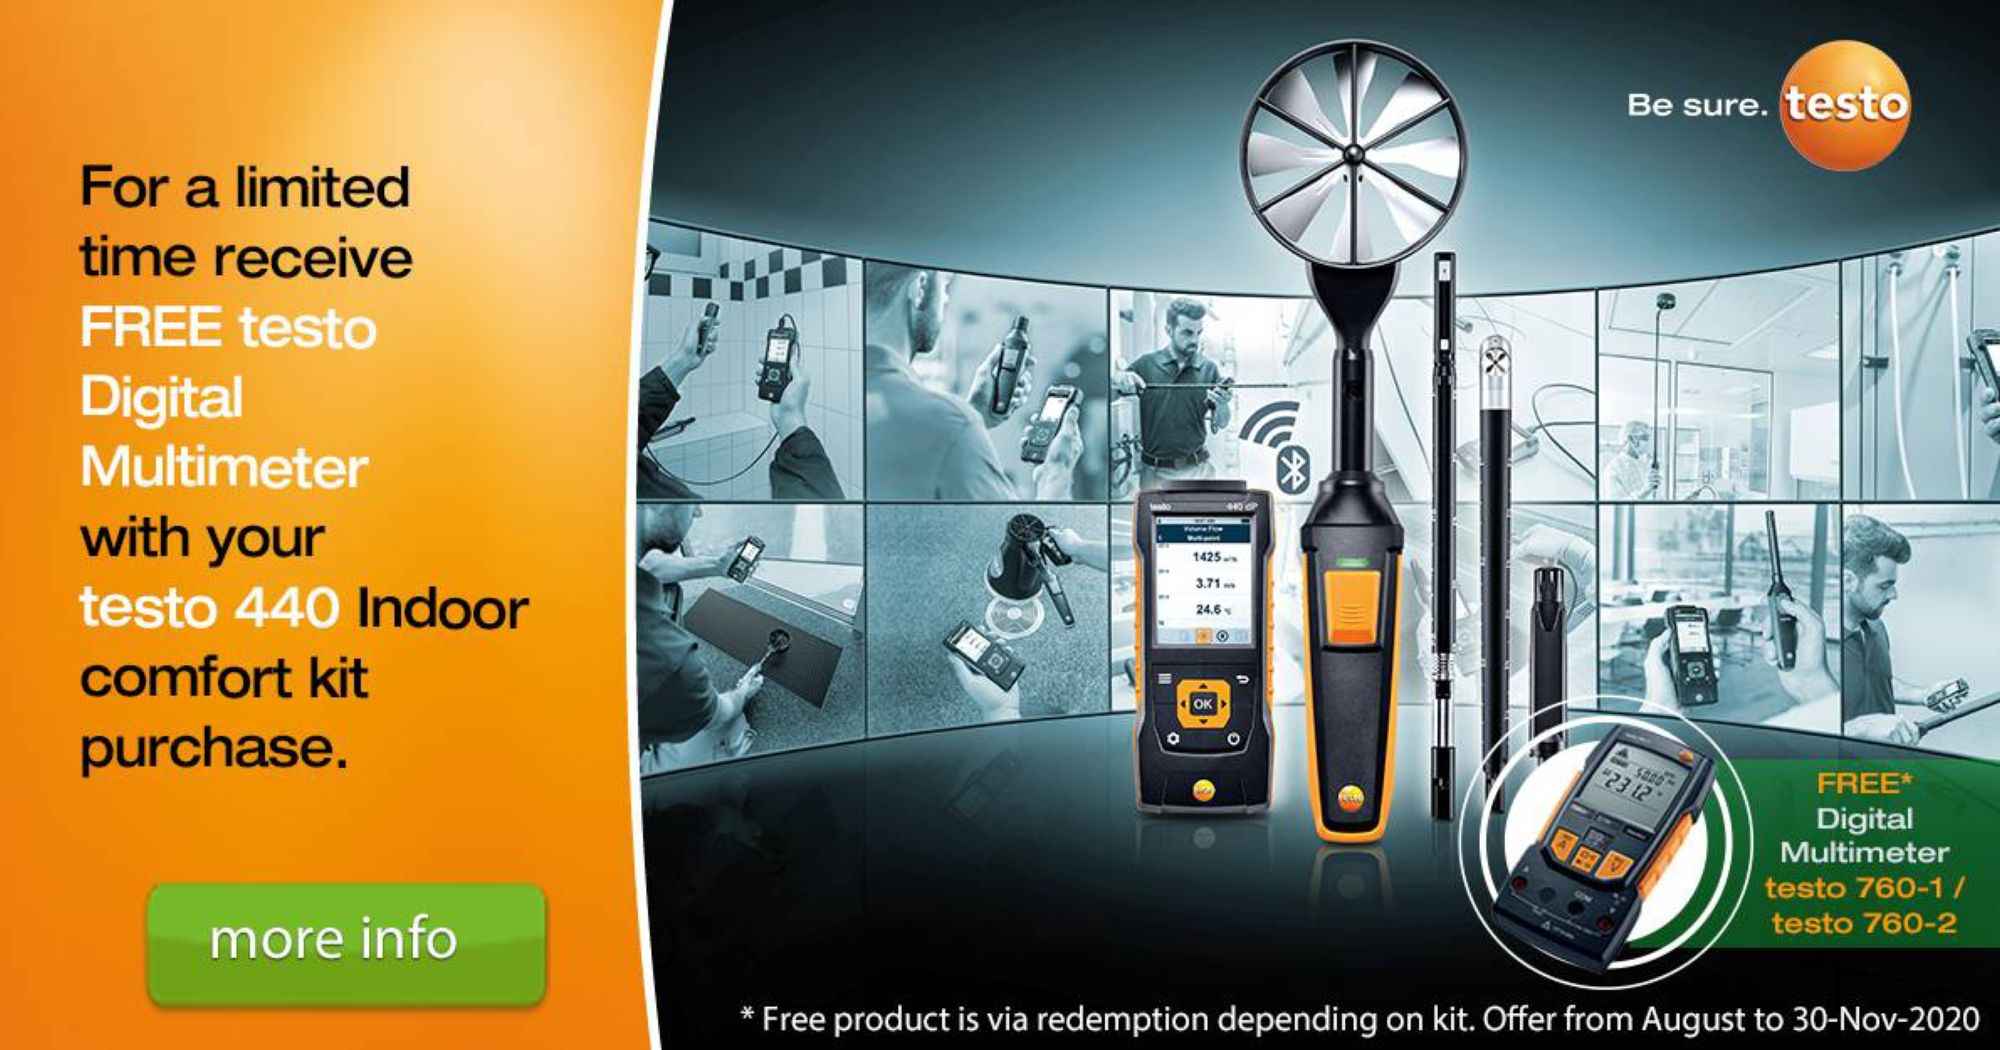 testo-440+605i-SoMe-Email-1200x628-animated.jpg